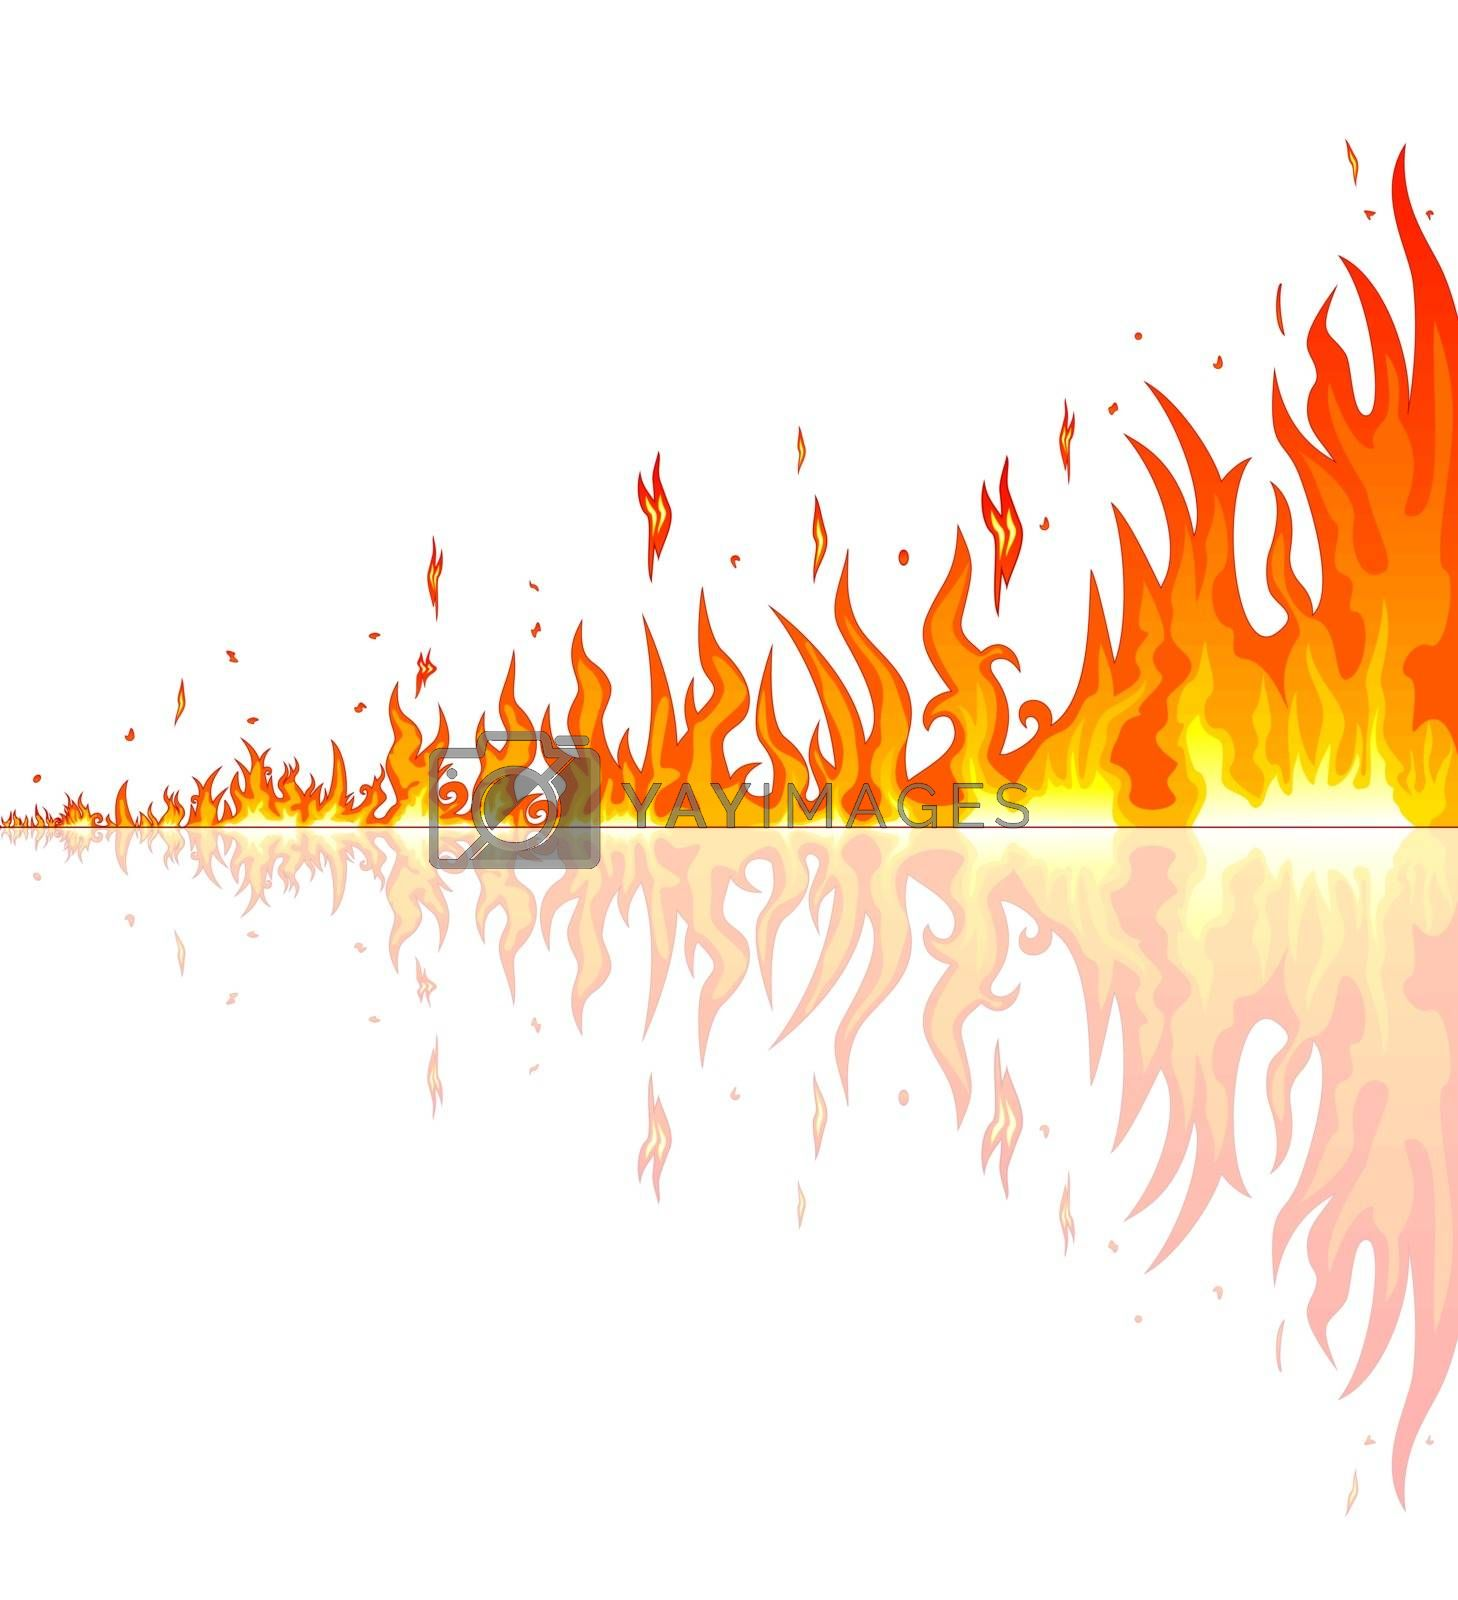 Flames burning fire. Abstract fire on a white background. Border of abstract fire.